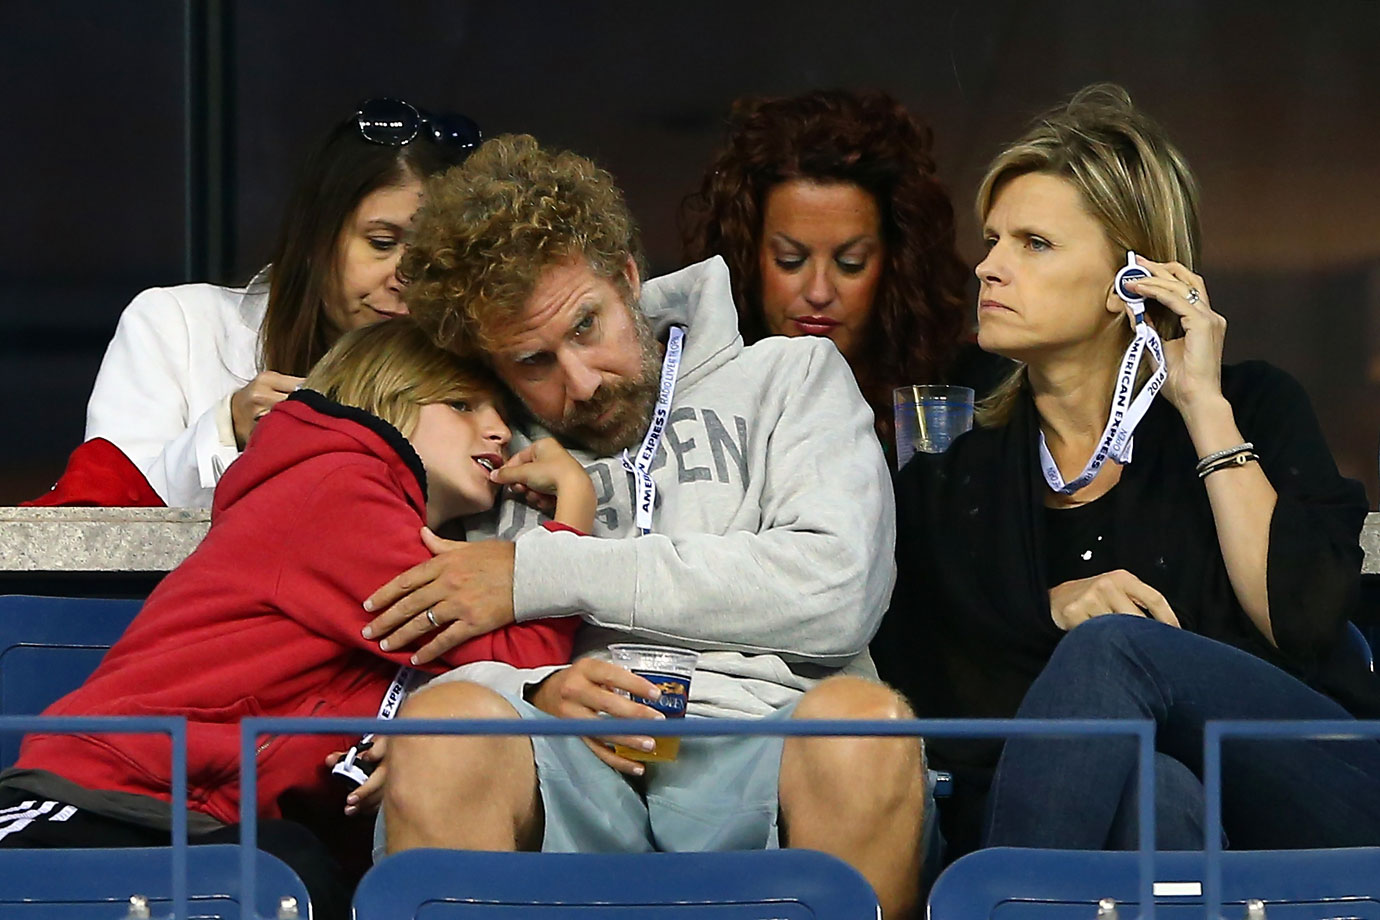 Will Ferrell, wife Viveca and son Mattias attend Day 5 of the US Open on Aug. 29, 2014 at the USTA Billie Jean King National Tennis Center in Flushing, N.Y.